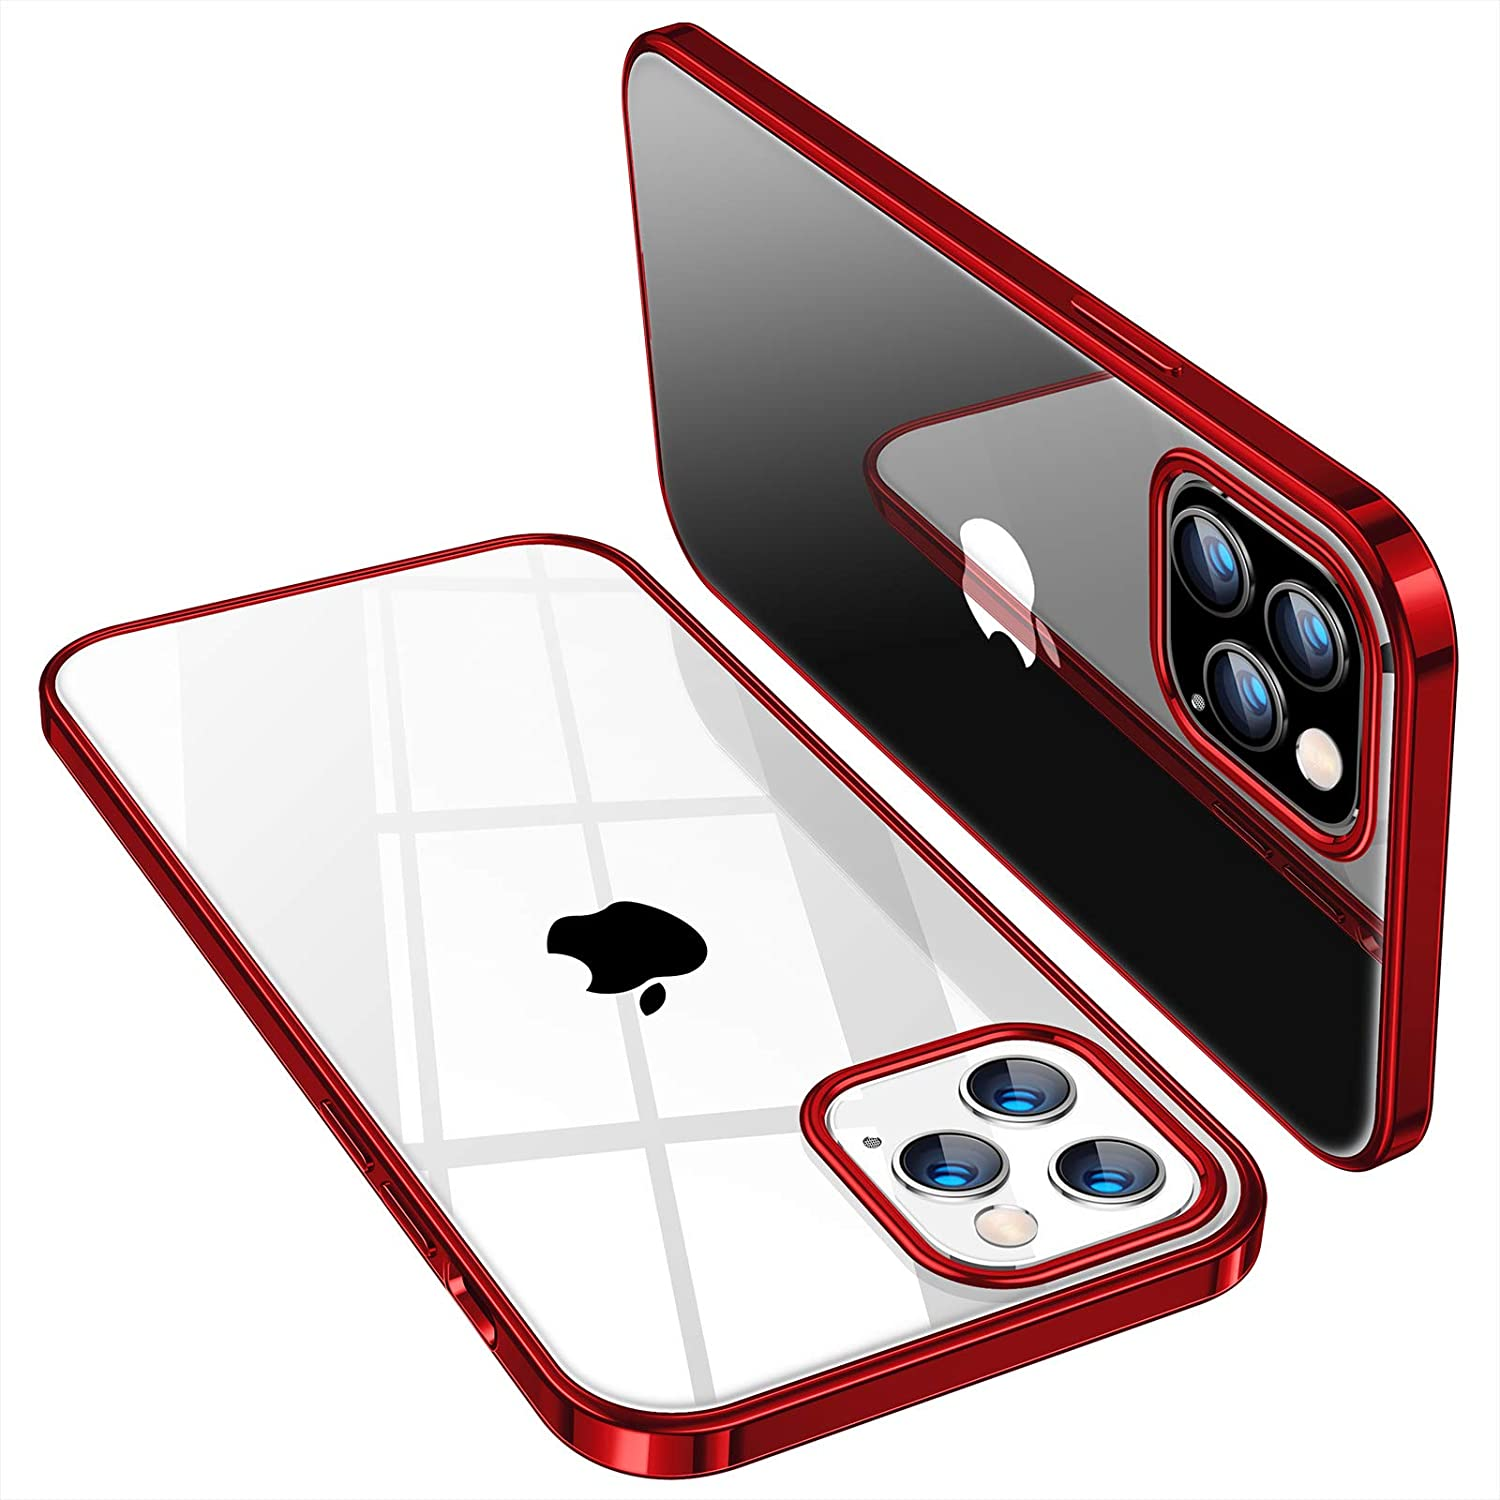 TORRAS Crystal Clear Compatible with iPhone 12 Case (2020) / Designed for iPhone 12 Pro Case 6.1 Inch 5G 2020, Glossy Red